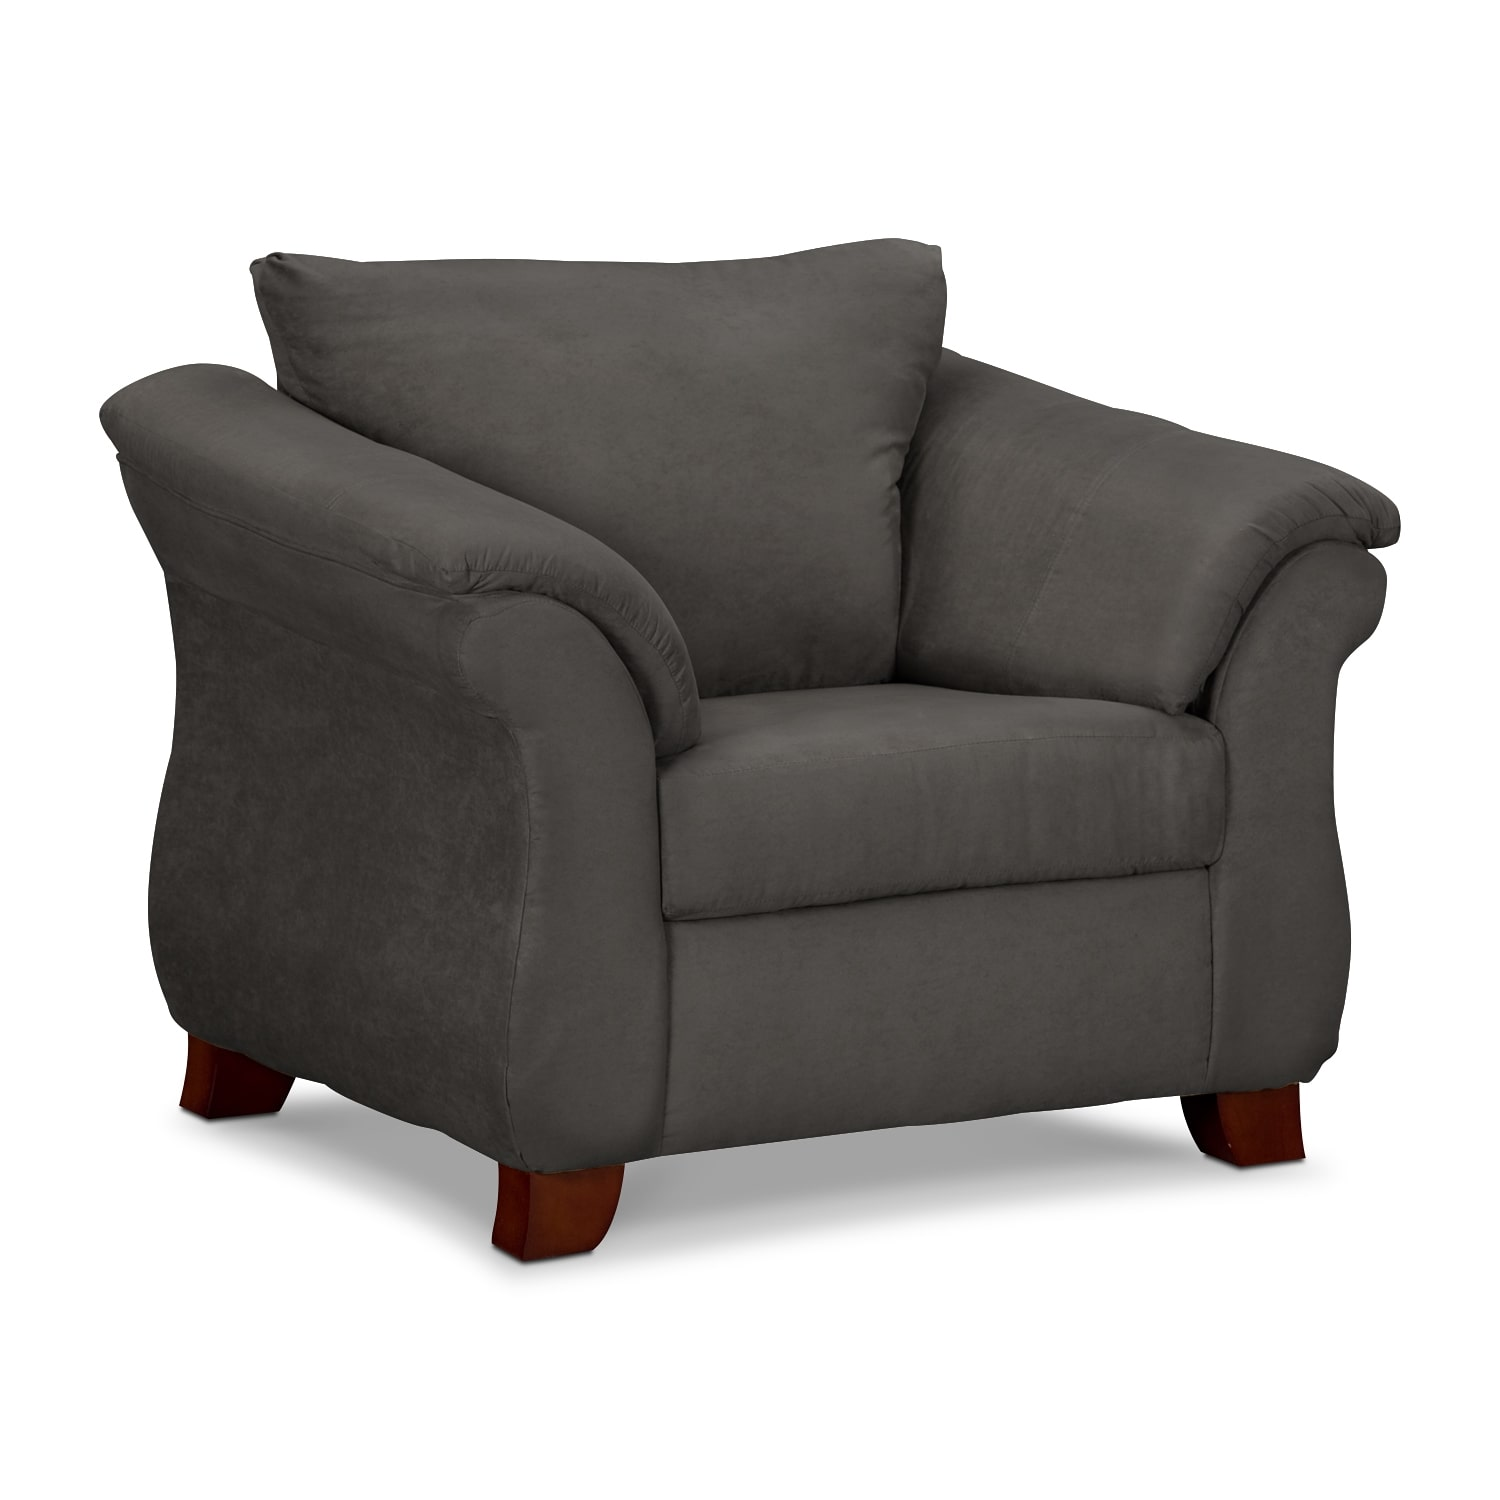 Value City Chairs Living Room Furniture Adrian Graphite Chair